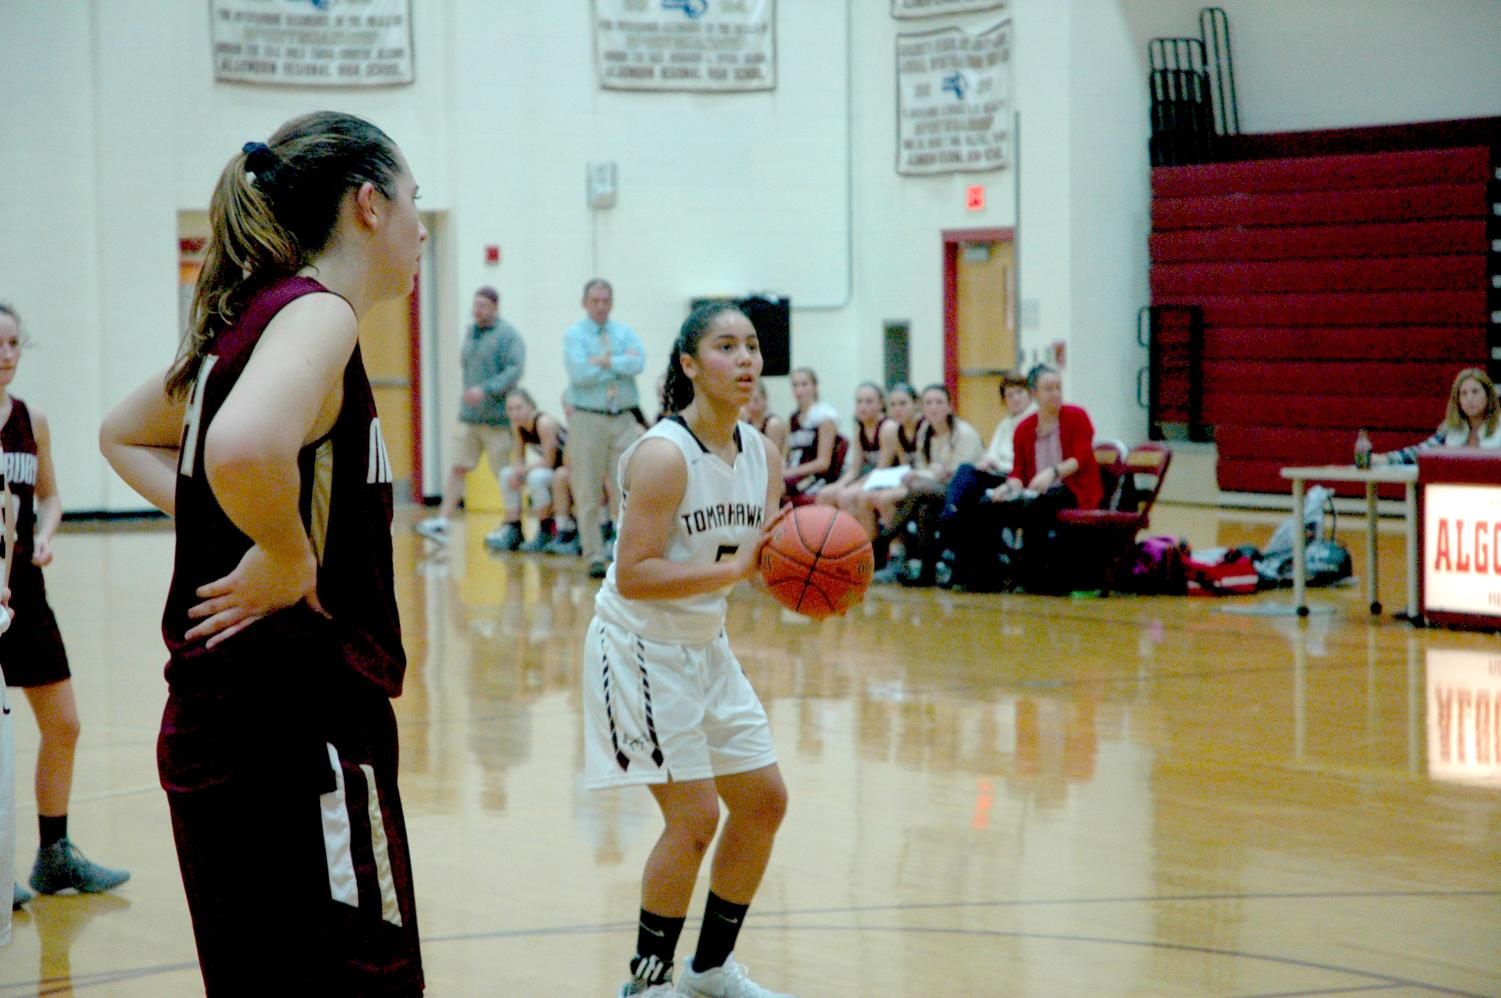 Senior Naraylee Baez prepares to take a free throw. Baez led the T-Hawks in scoring with 10 points.